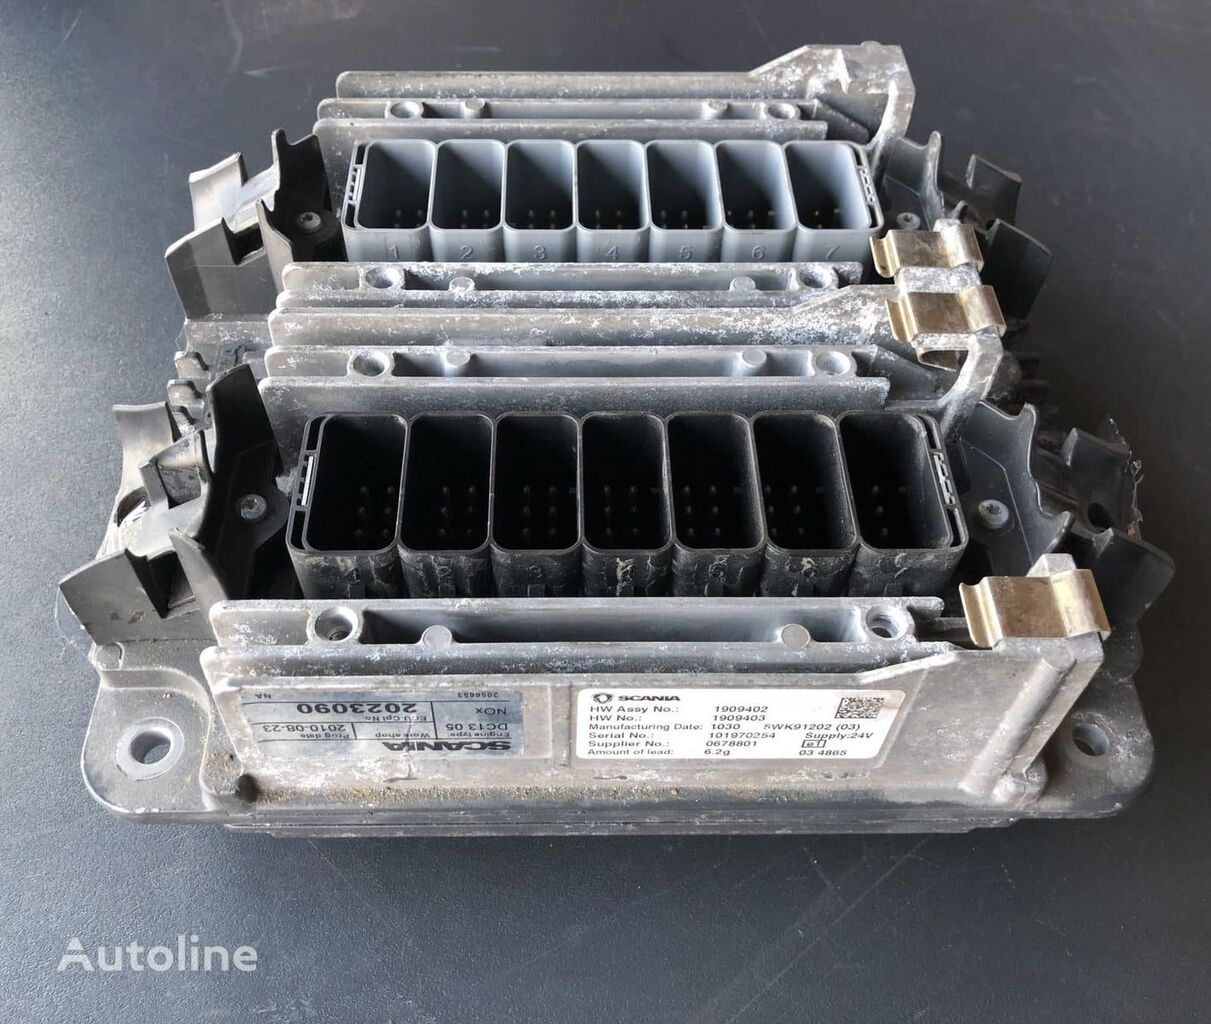 SCANIA ECU DC 13.05 EU5 – XPI – 400hp engine for truck